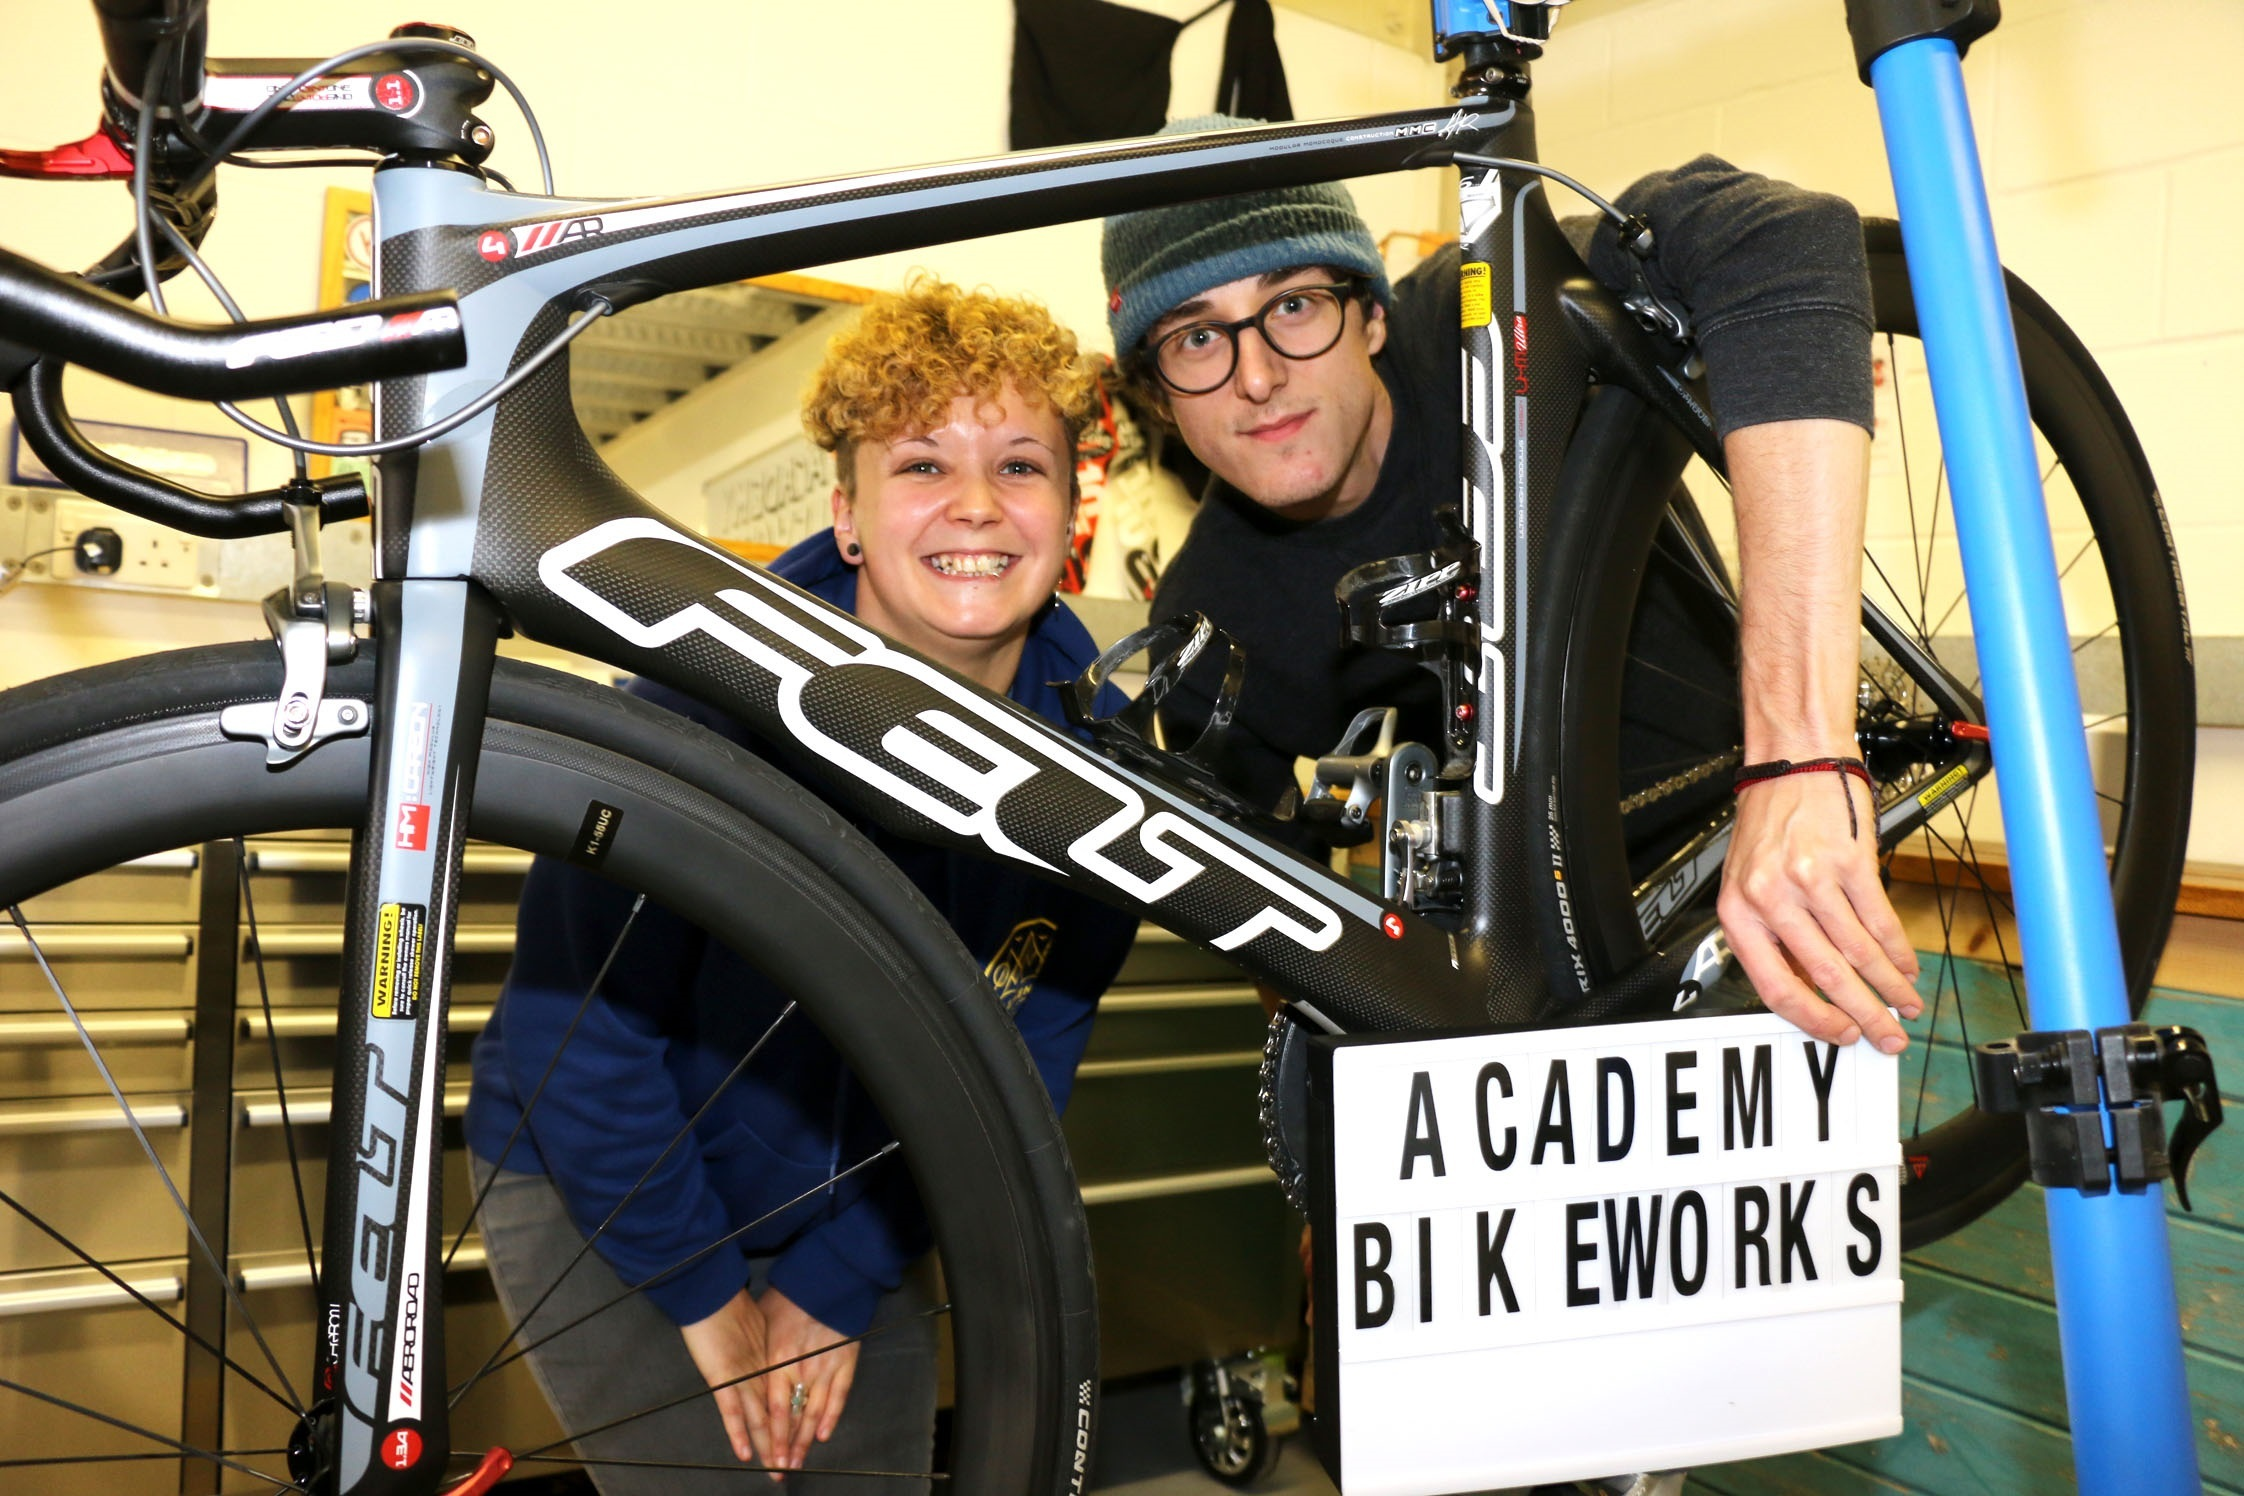 Hannah Smith and Owen Hazlewood, of new Bromsgrove bike shop Academy Bikeworks